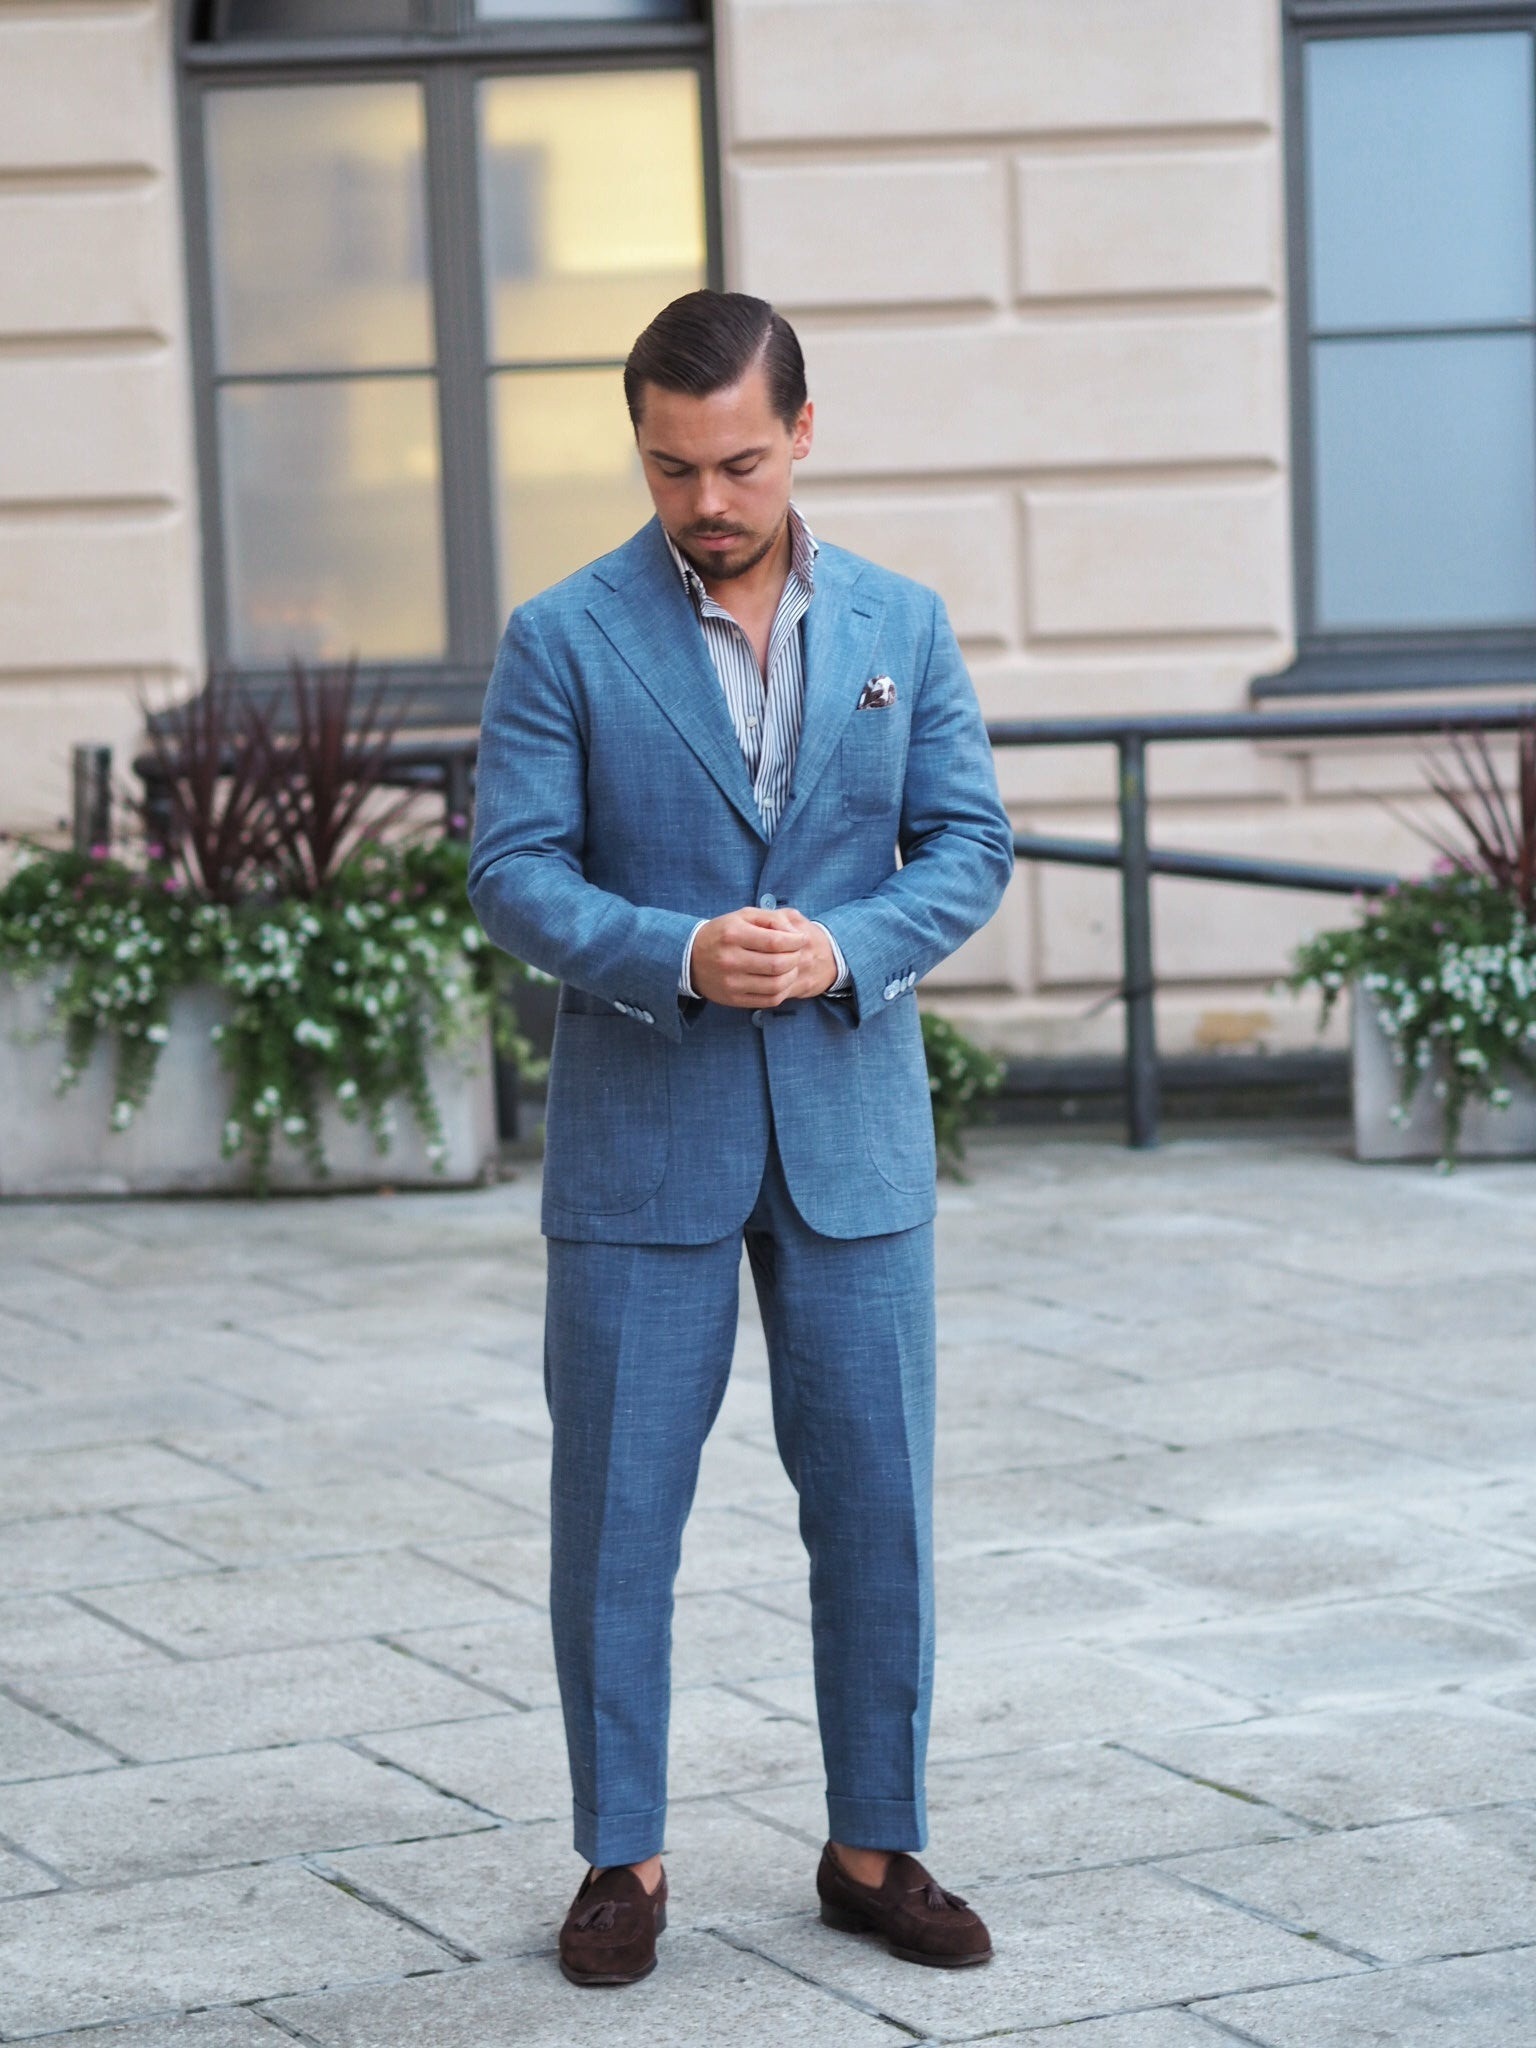 Light blue suit for summer - the suit with brown suede tassel loafers